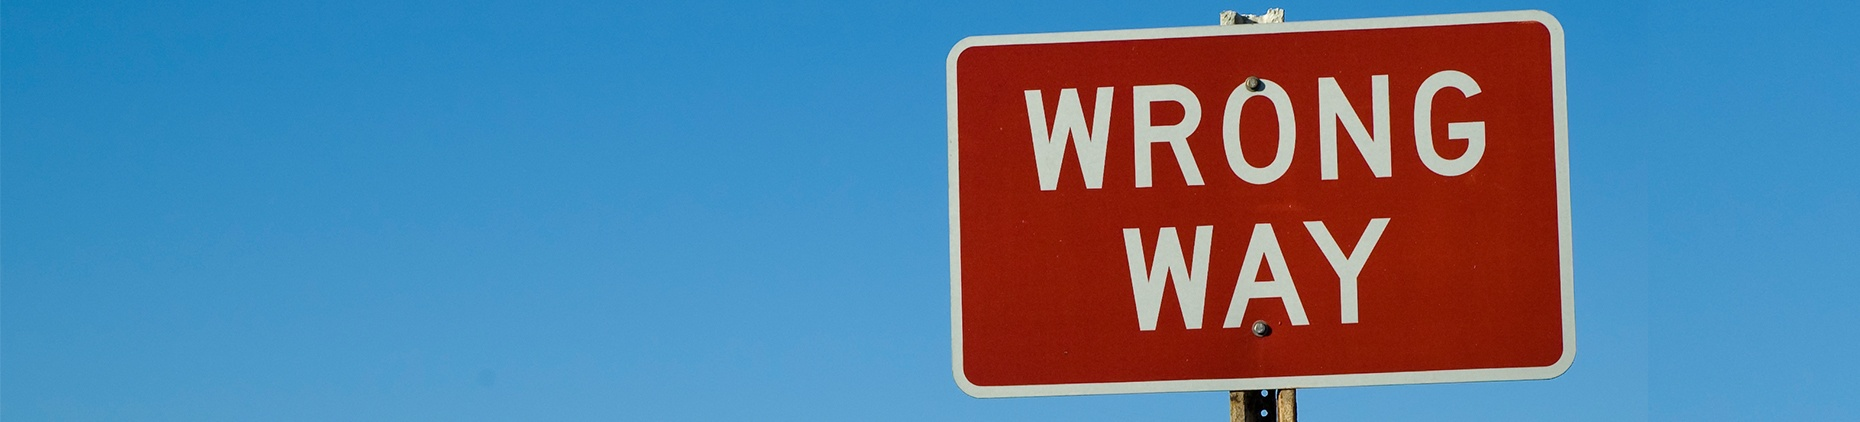 Common Sales Training Mistakes to Avoid